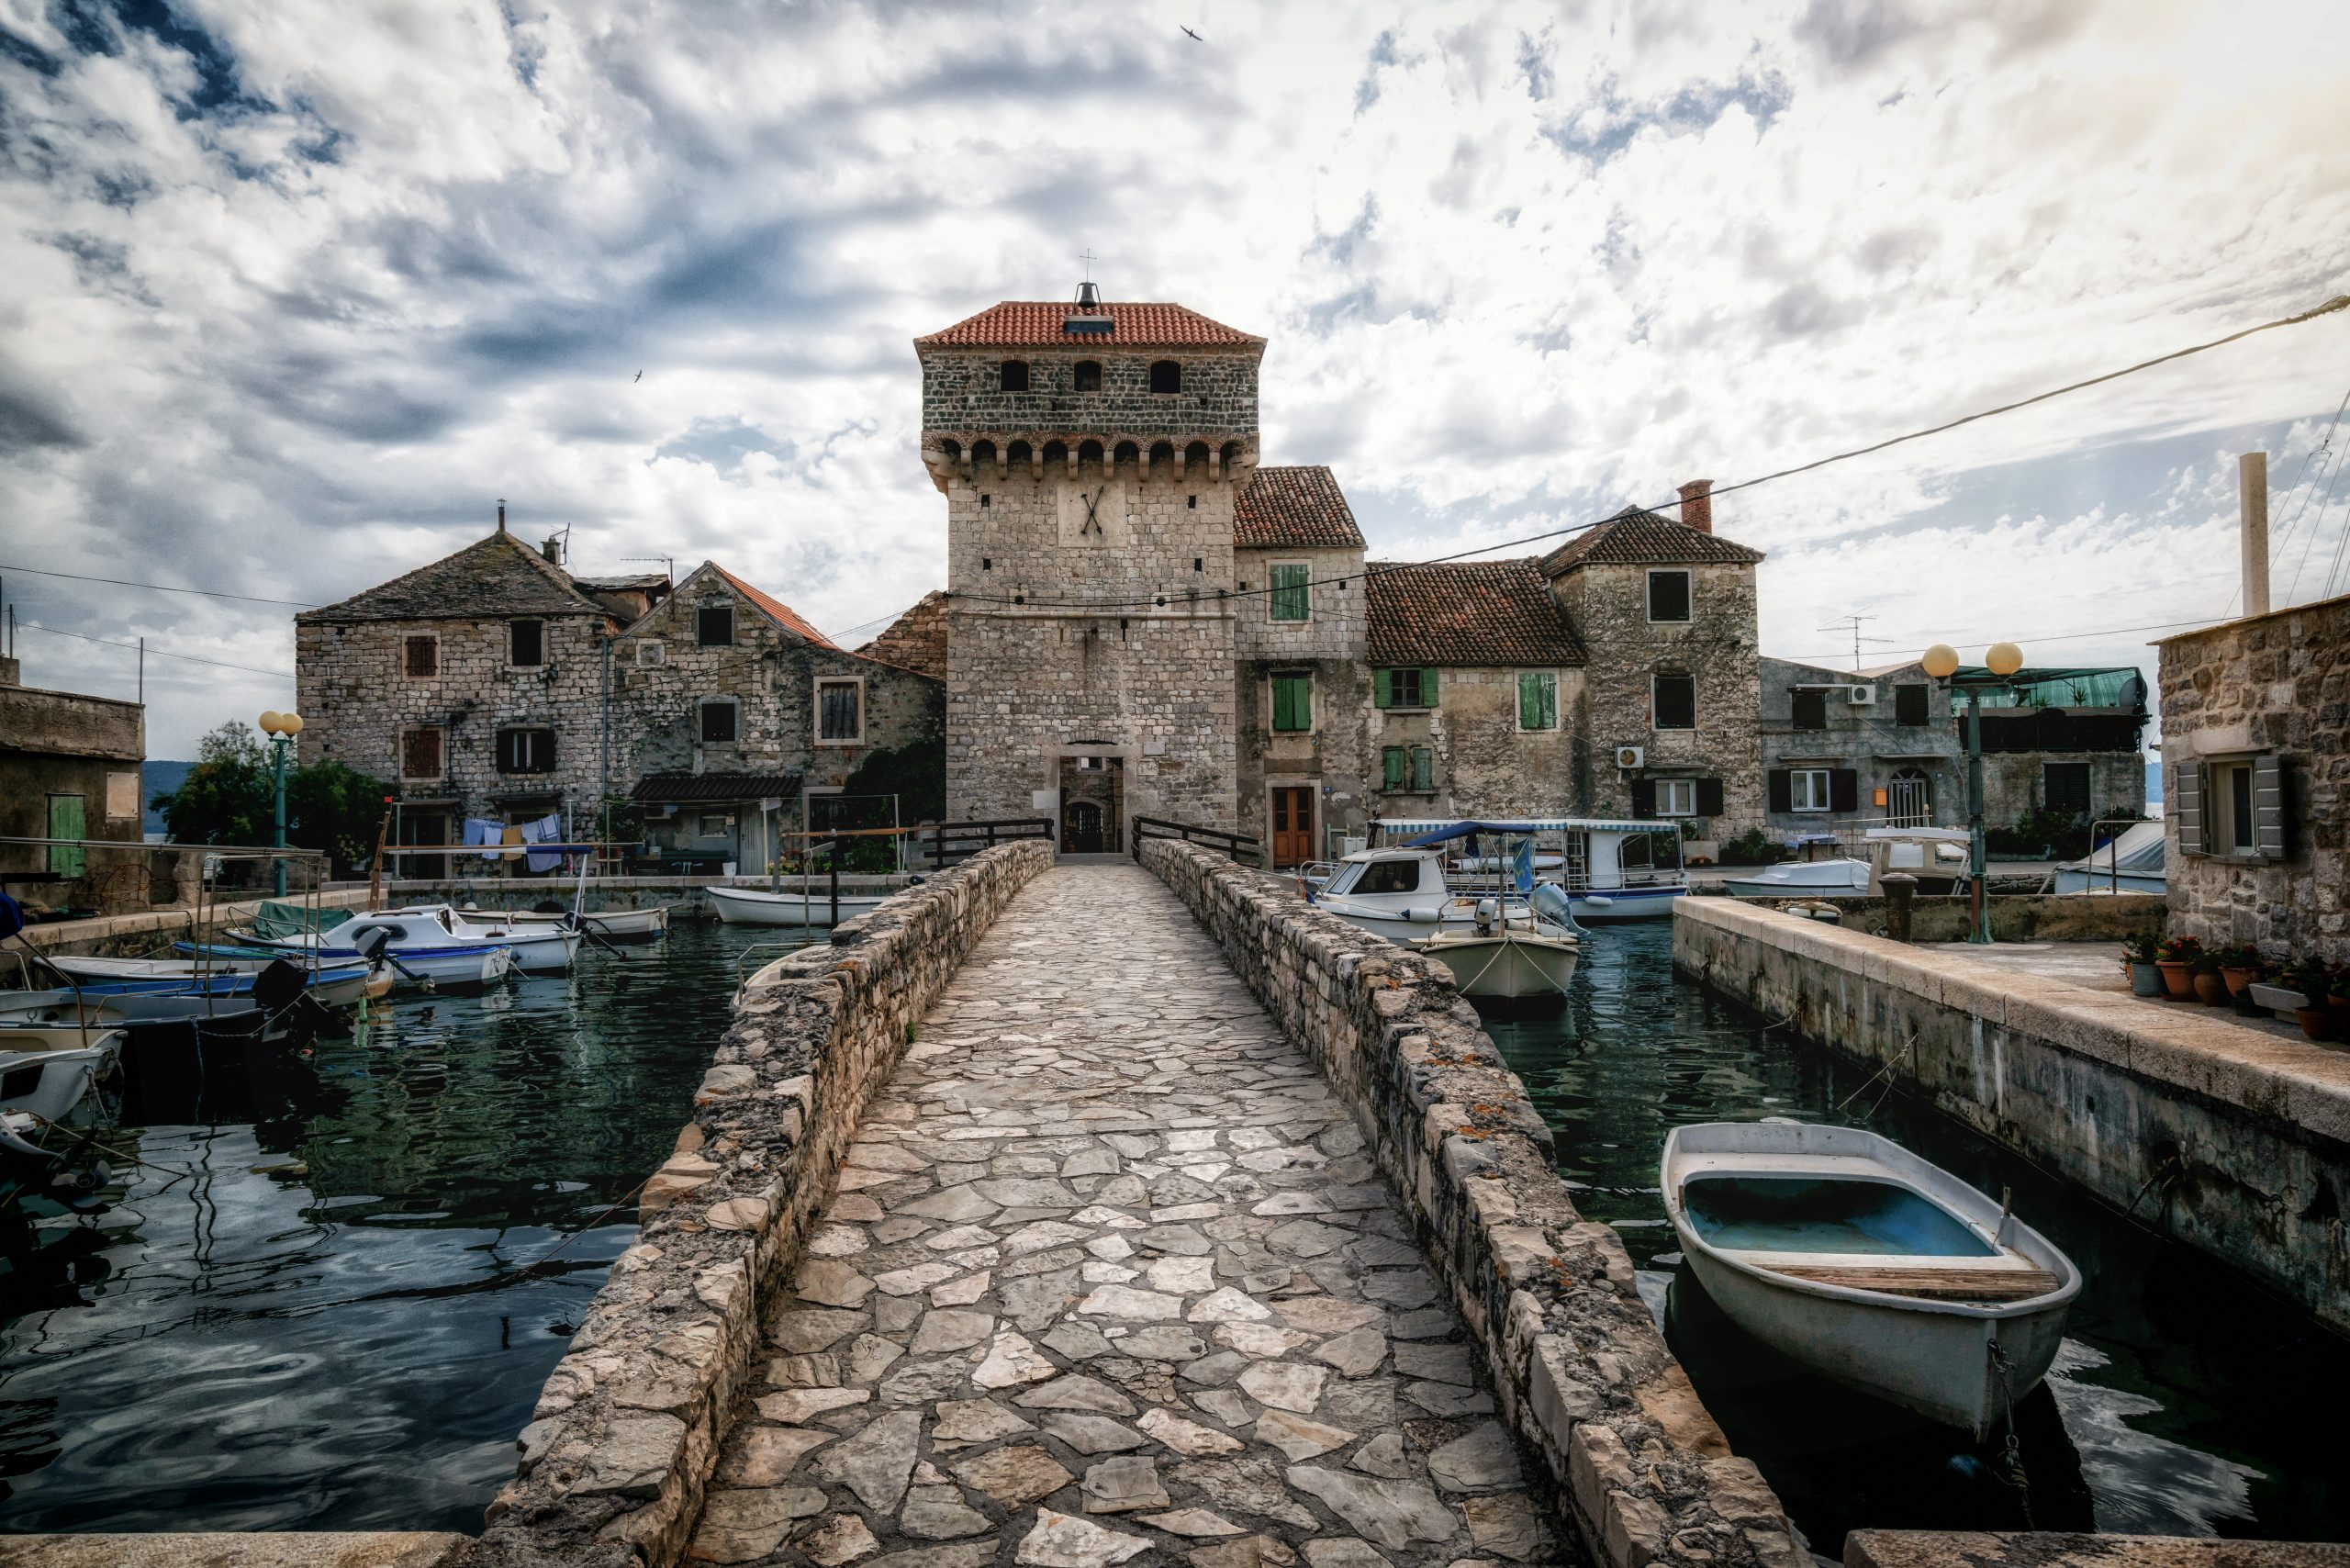 Explore The Game Of Thrones Sceneries During Your Game Of Thrones Tour From Split